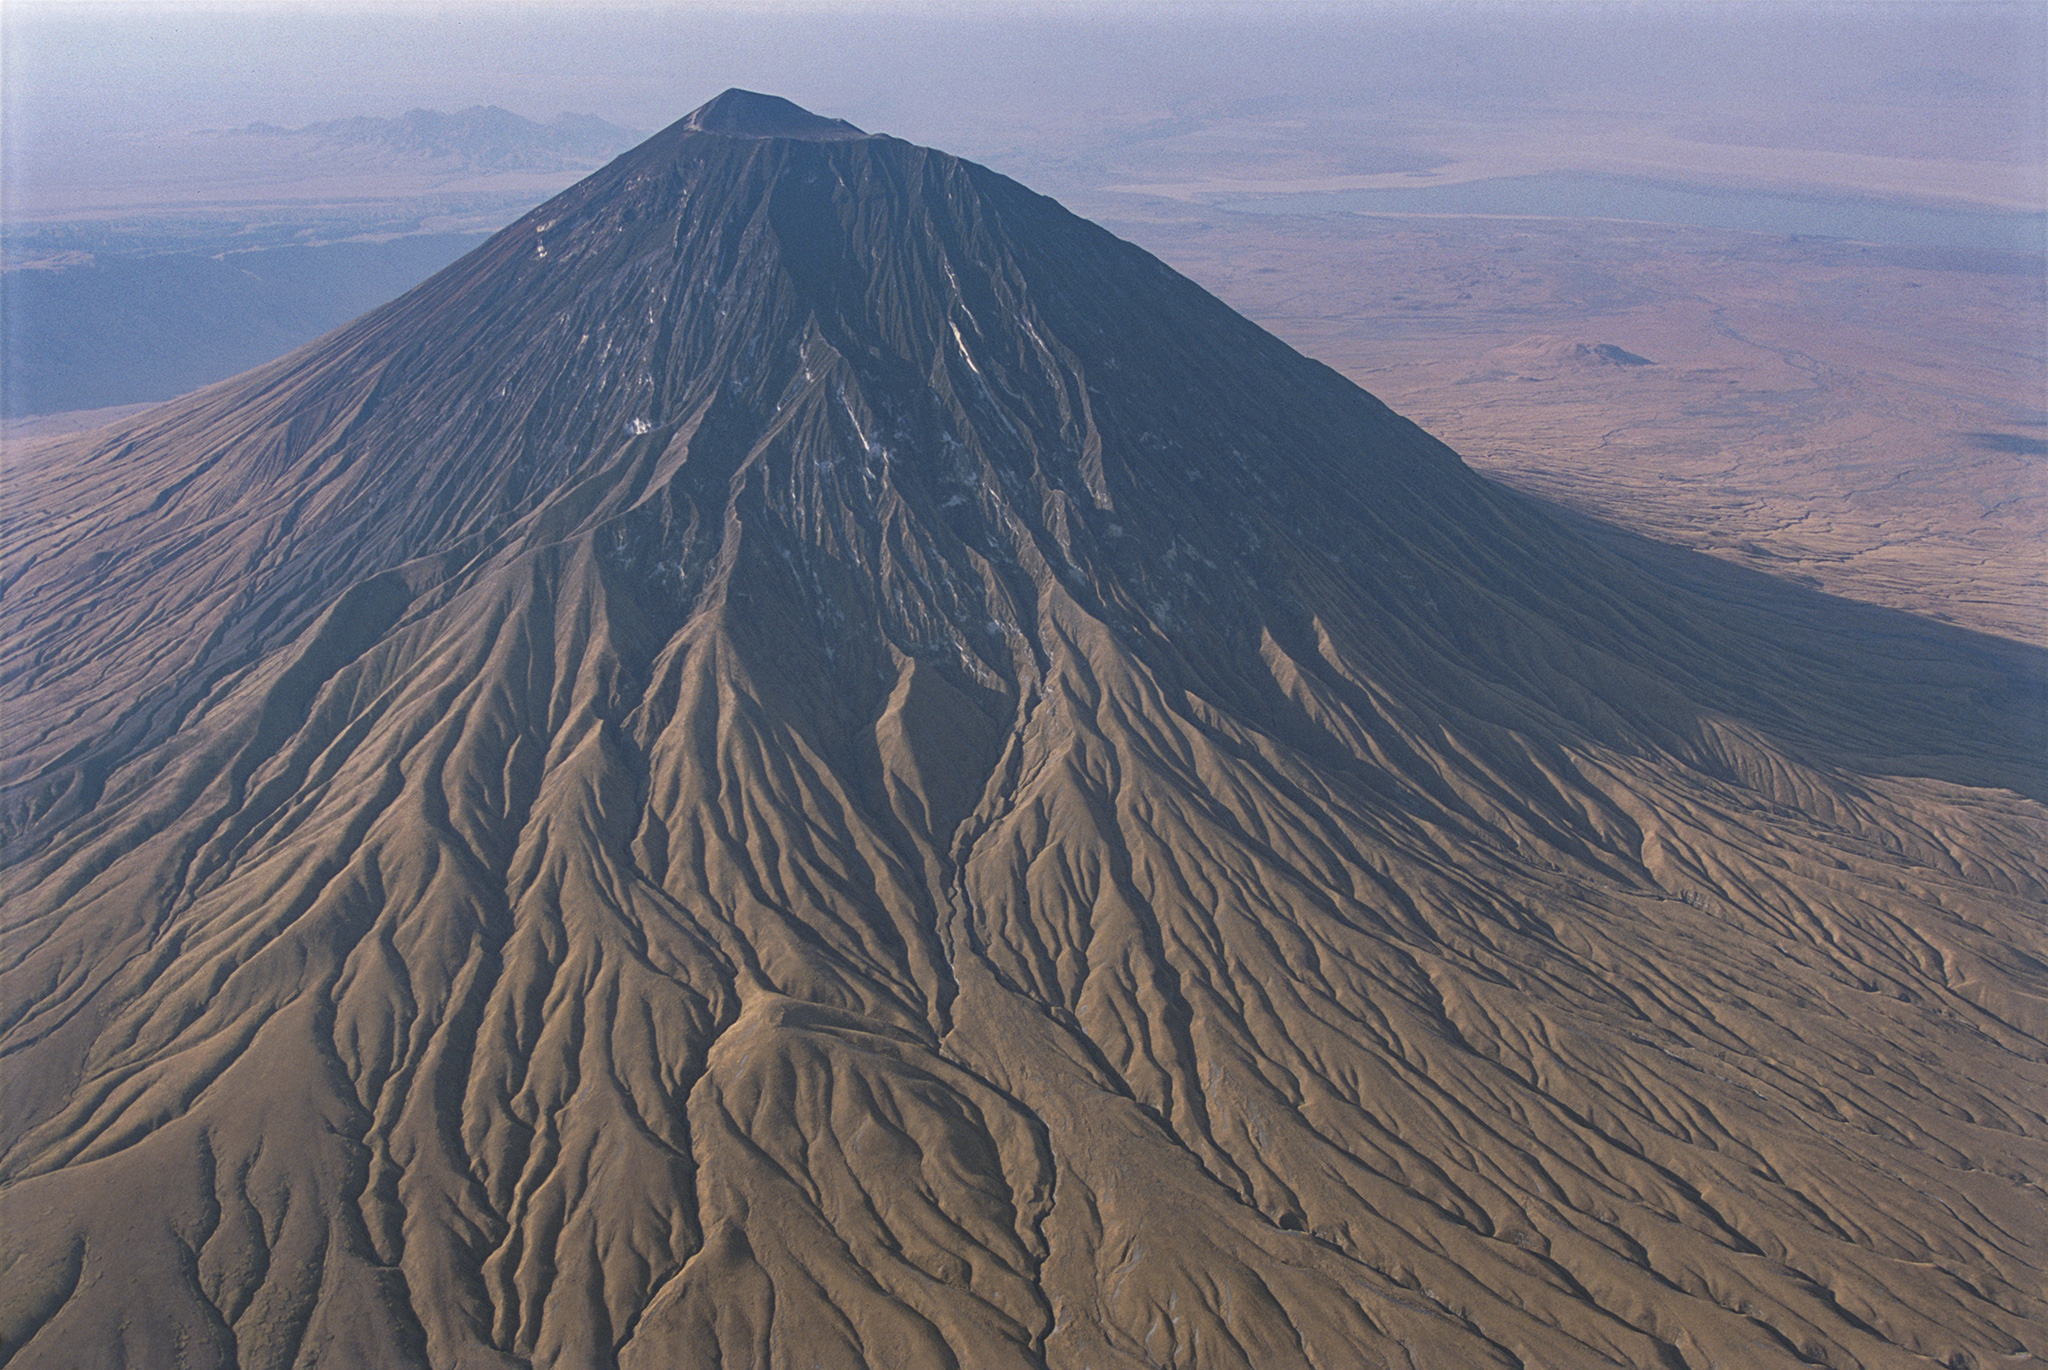 """Ol doinyo Lengai"""" means """"The Mountain of God"""" in the Maasai language."""